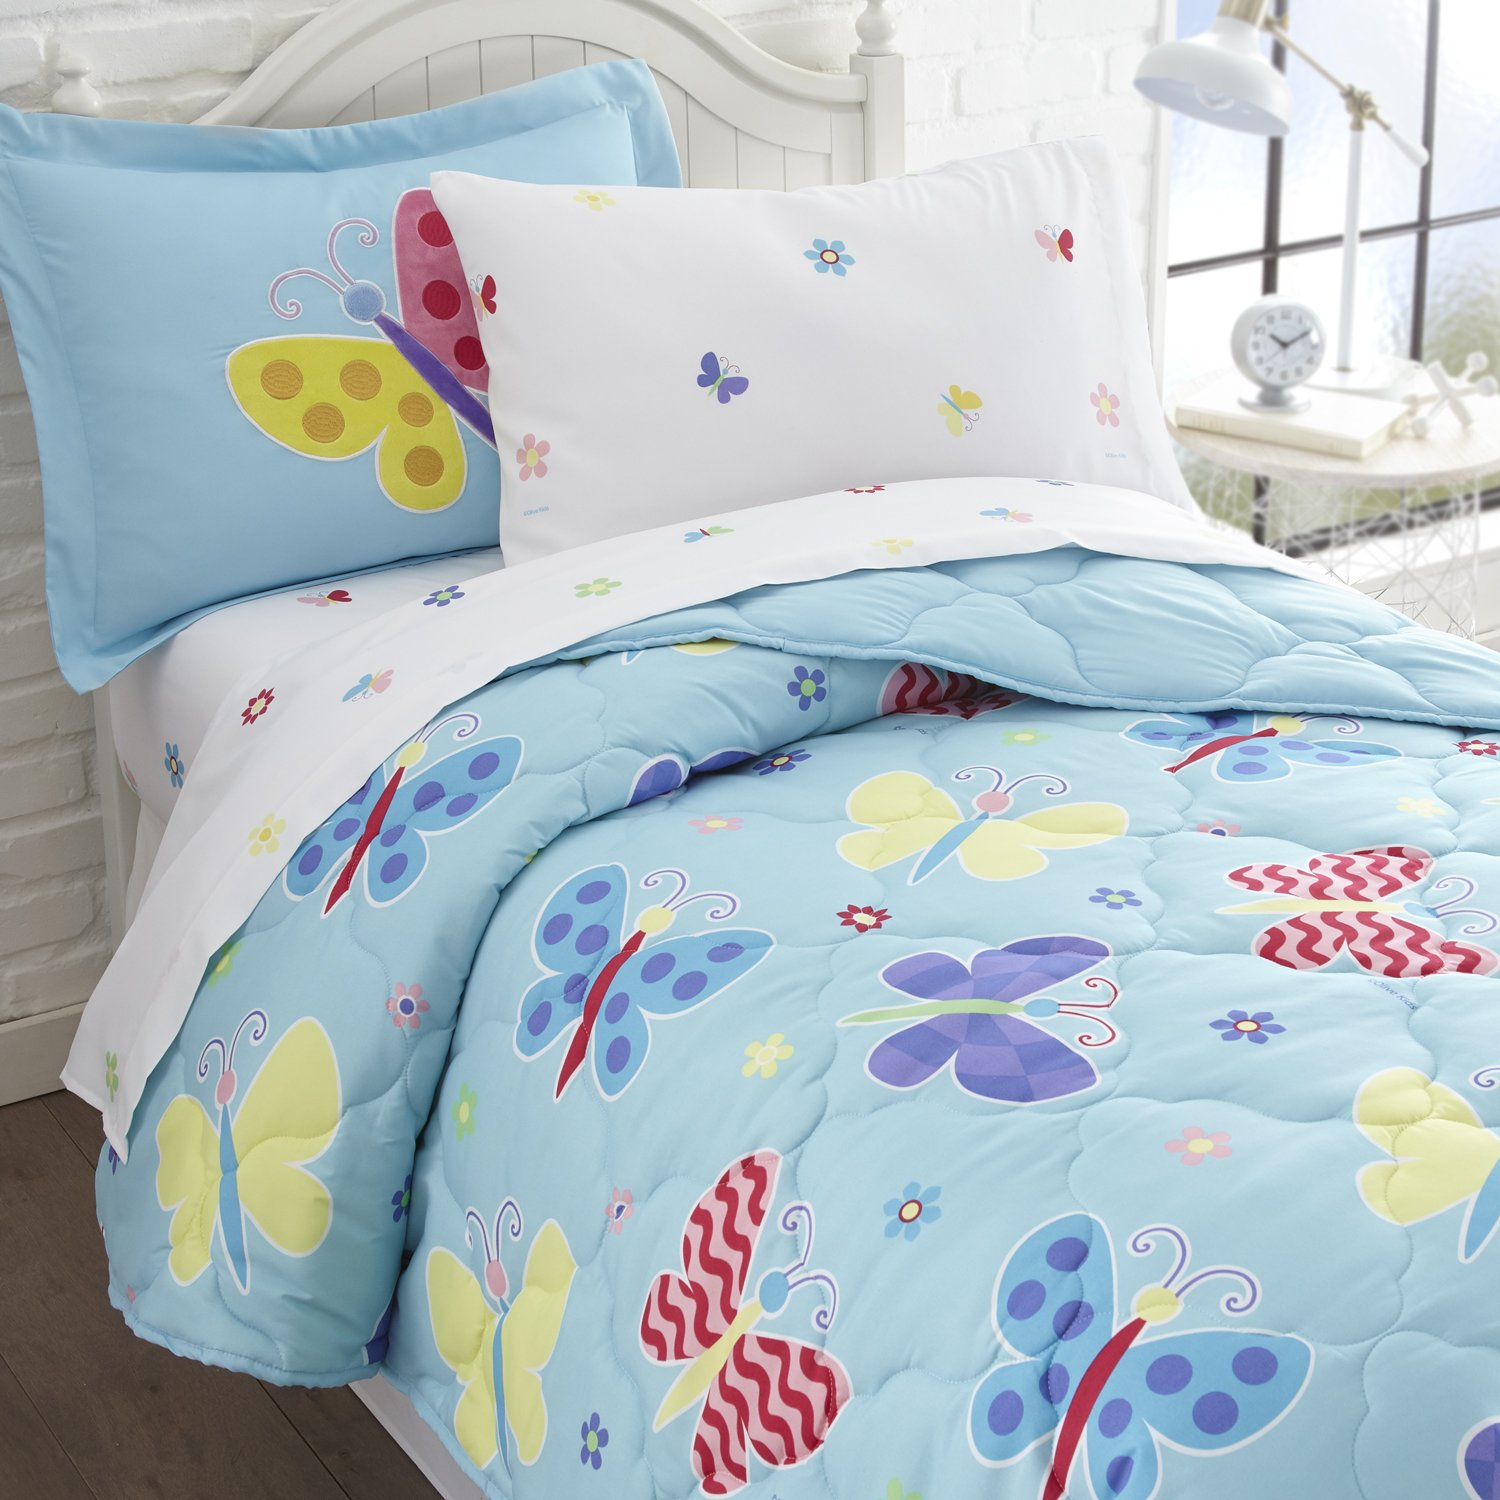 Olive Kids Go 7 pc Bed in aバッグ OK 7 pc Bed in a Bag Full 16692 B01BOYDHF0 OK 7 pc Bed in a Bag Full|Butterfly Garden Butterfly Garden OK 7 pc Bed in a Bag Full